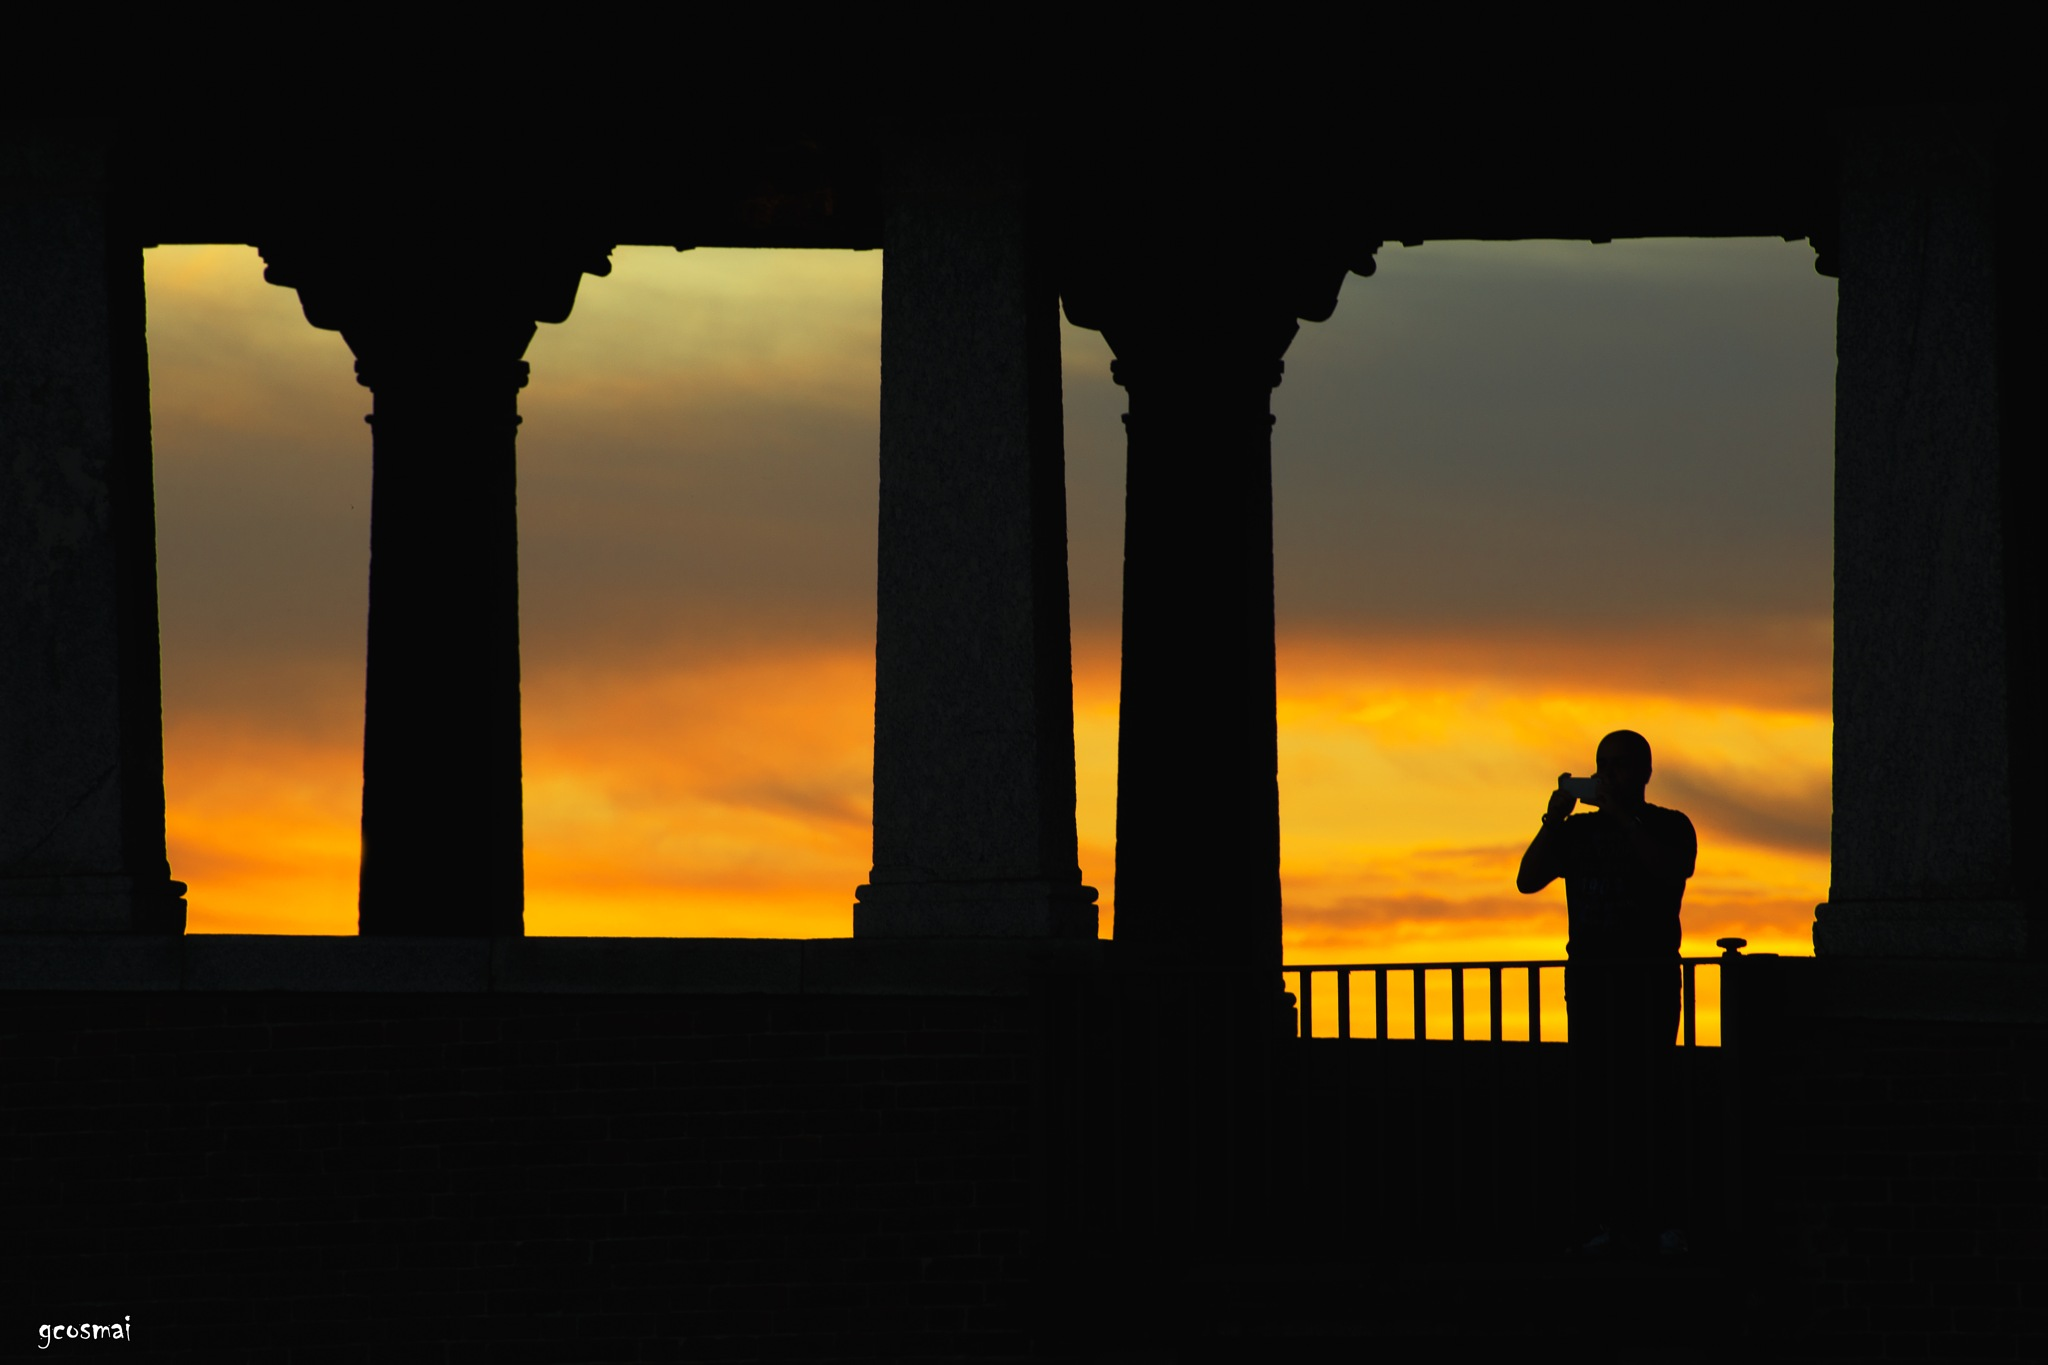 A snapshot at sunset by G.Cosmai